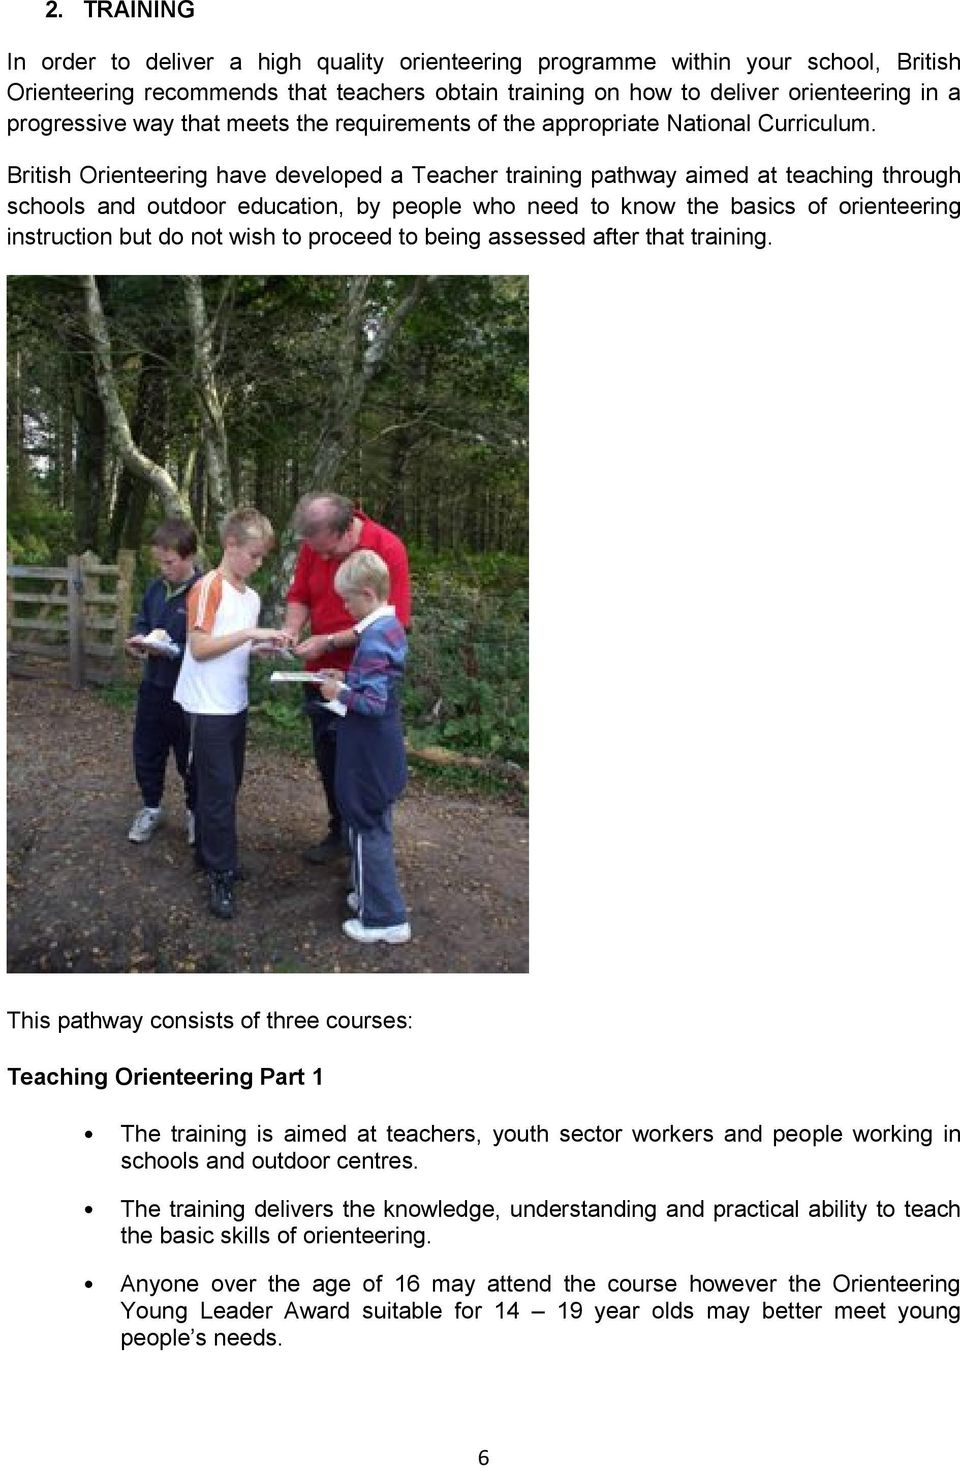 British Orienteering have developed a Teacher training pathway aimed at teaching through schools and outdoor education, by people who need to know the basics of orienteering instruction but do not